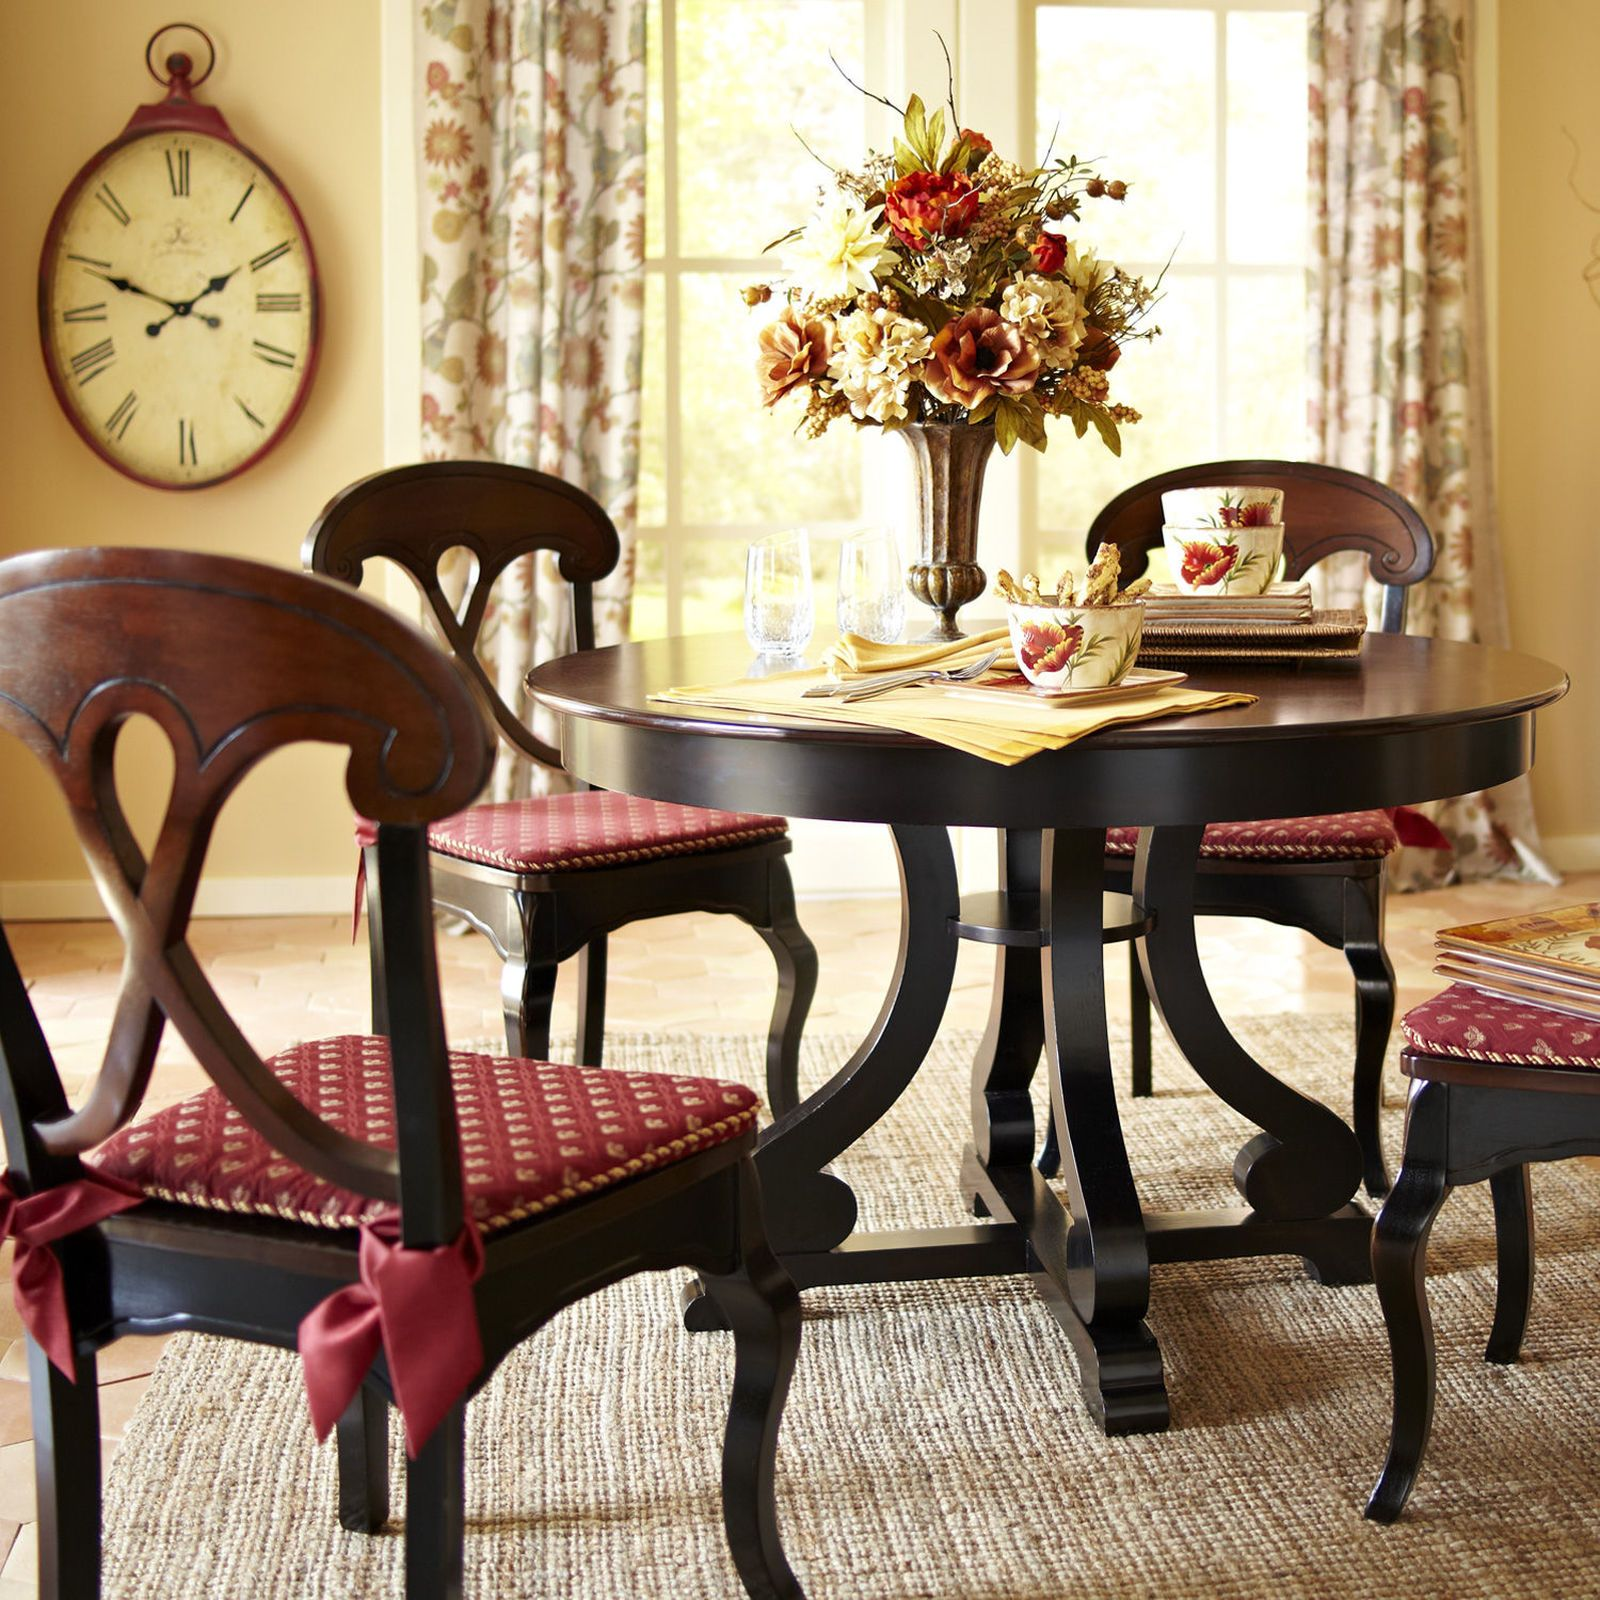 Pier 1 Marchella Dining Table And Chairs Paired With Gold Damask